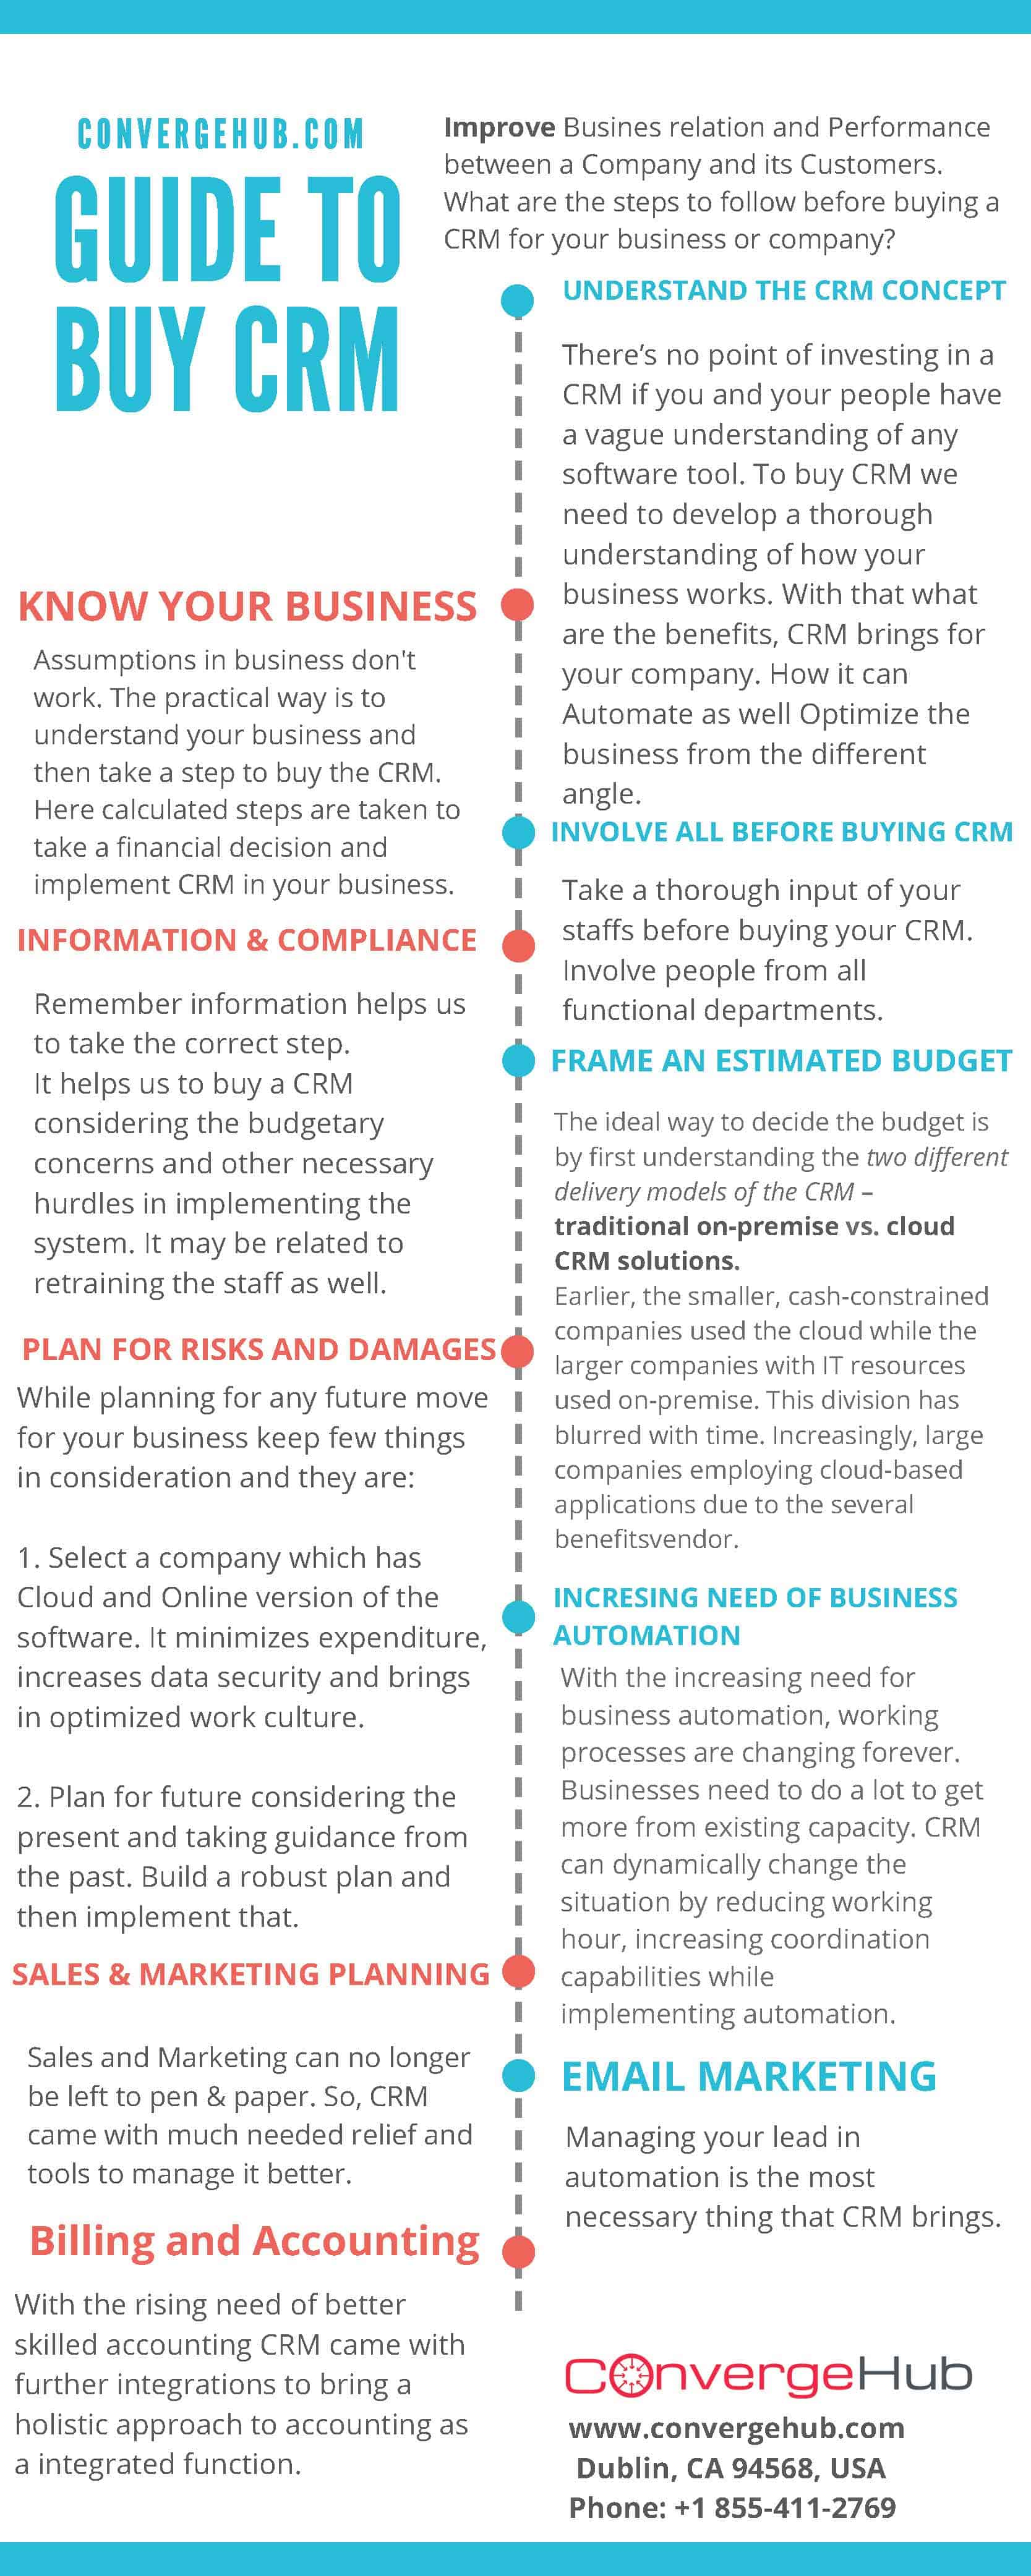 Guide to Buy CRM